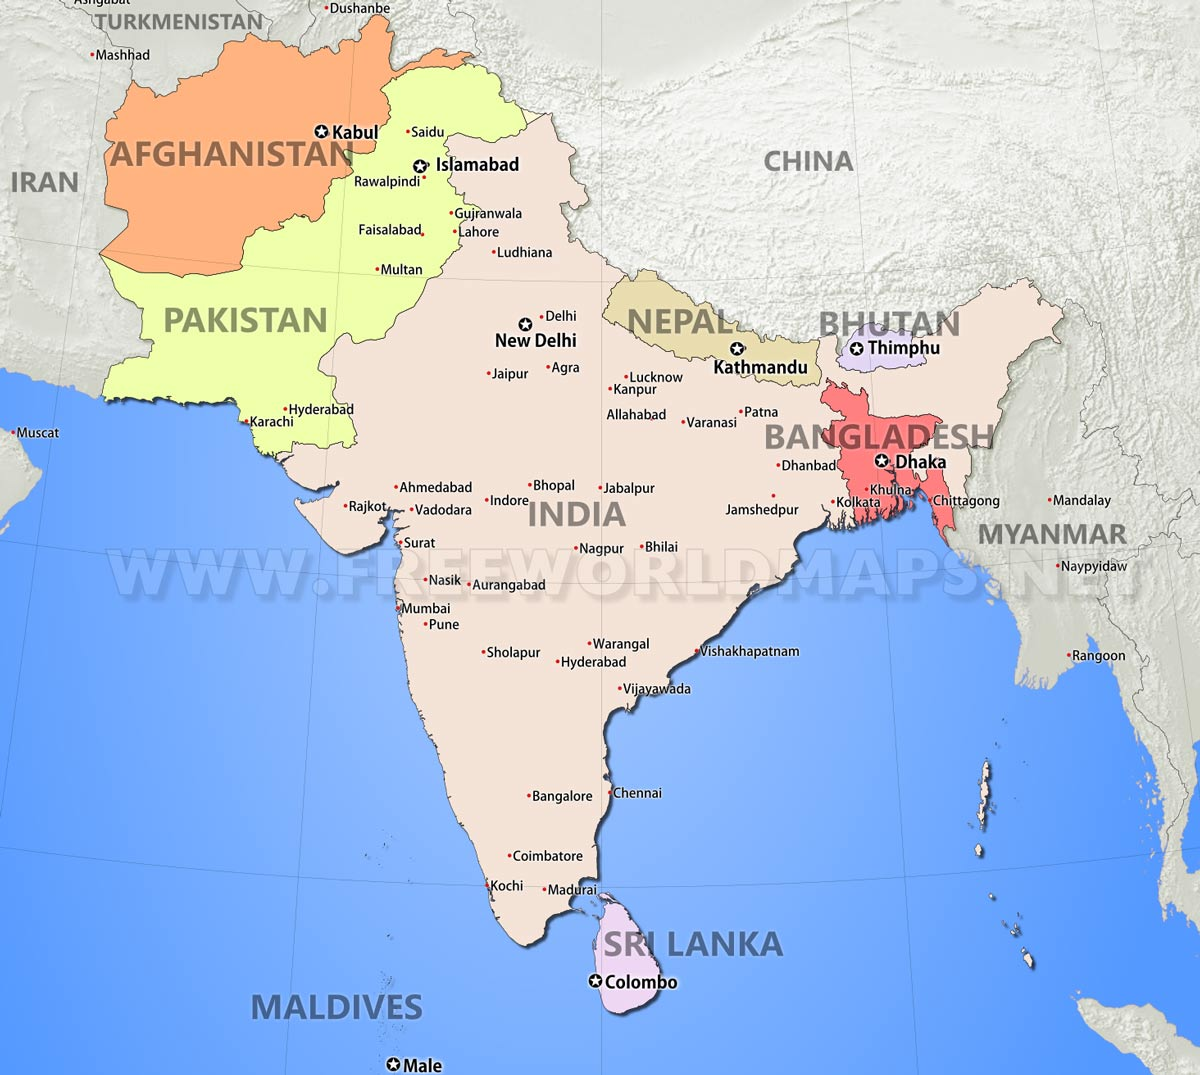 South Asia Maps – The Map of South Asia